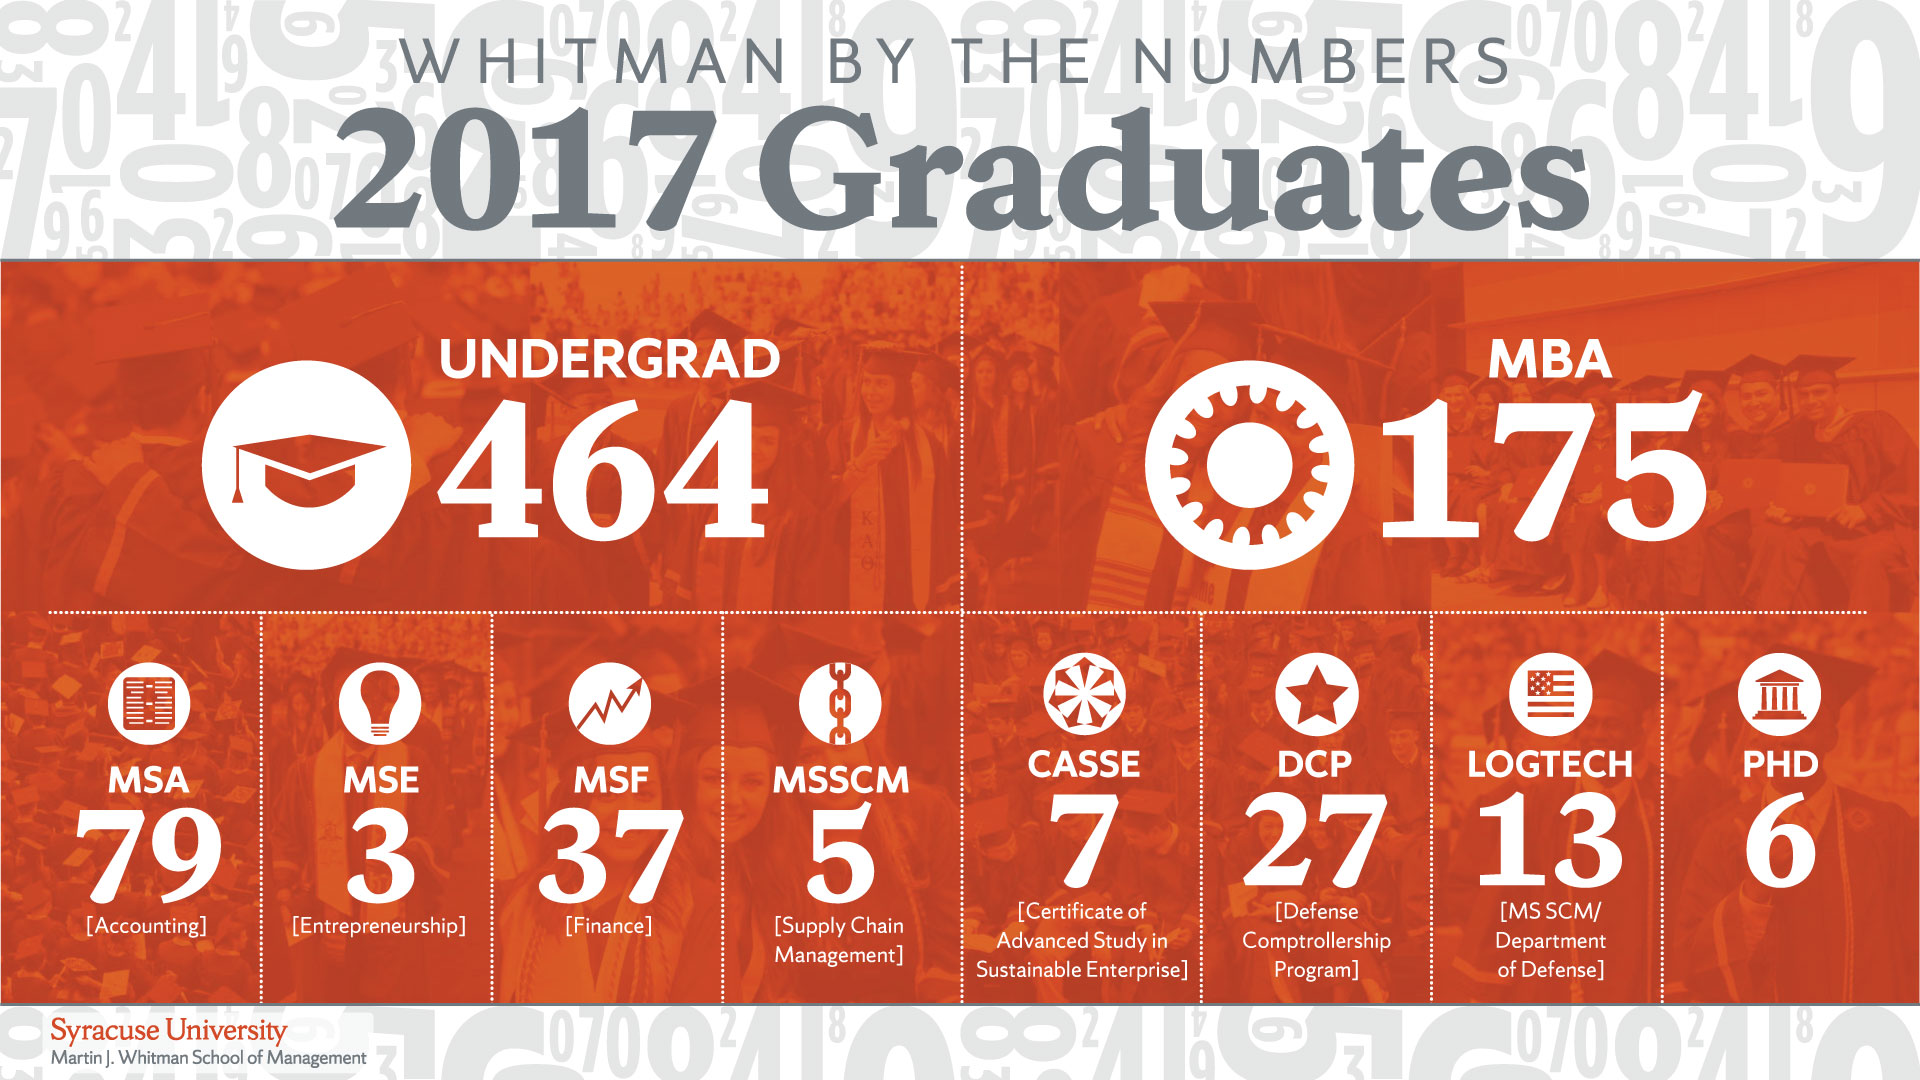 Whitman 2017 Graduates by the Numbers